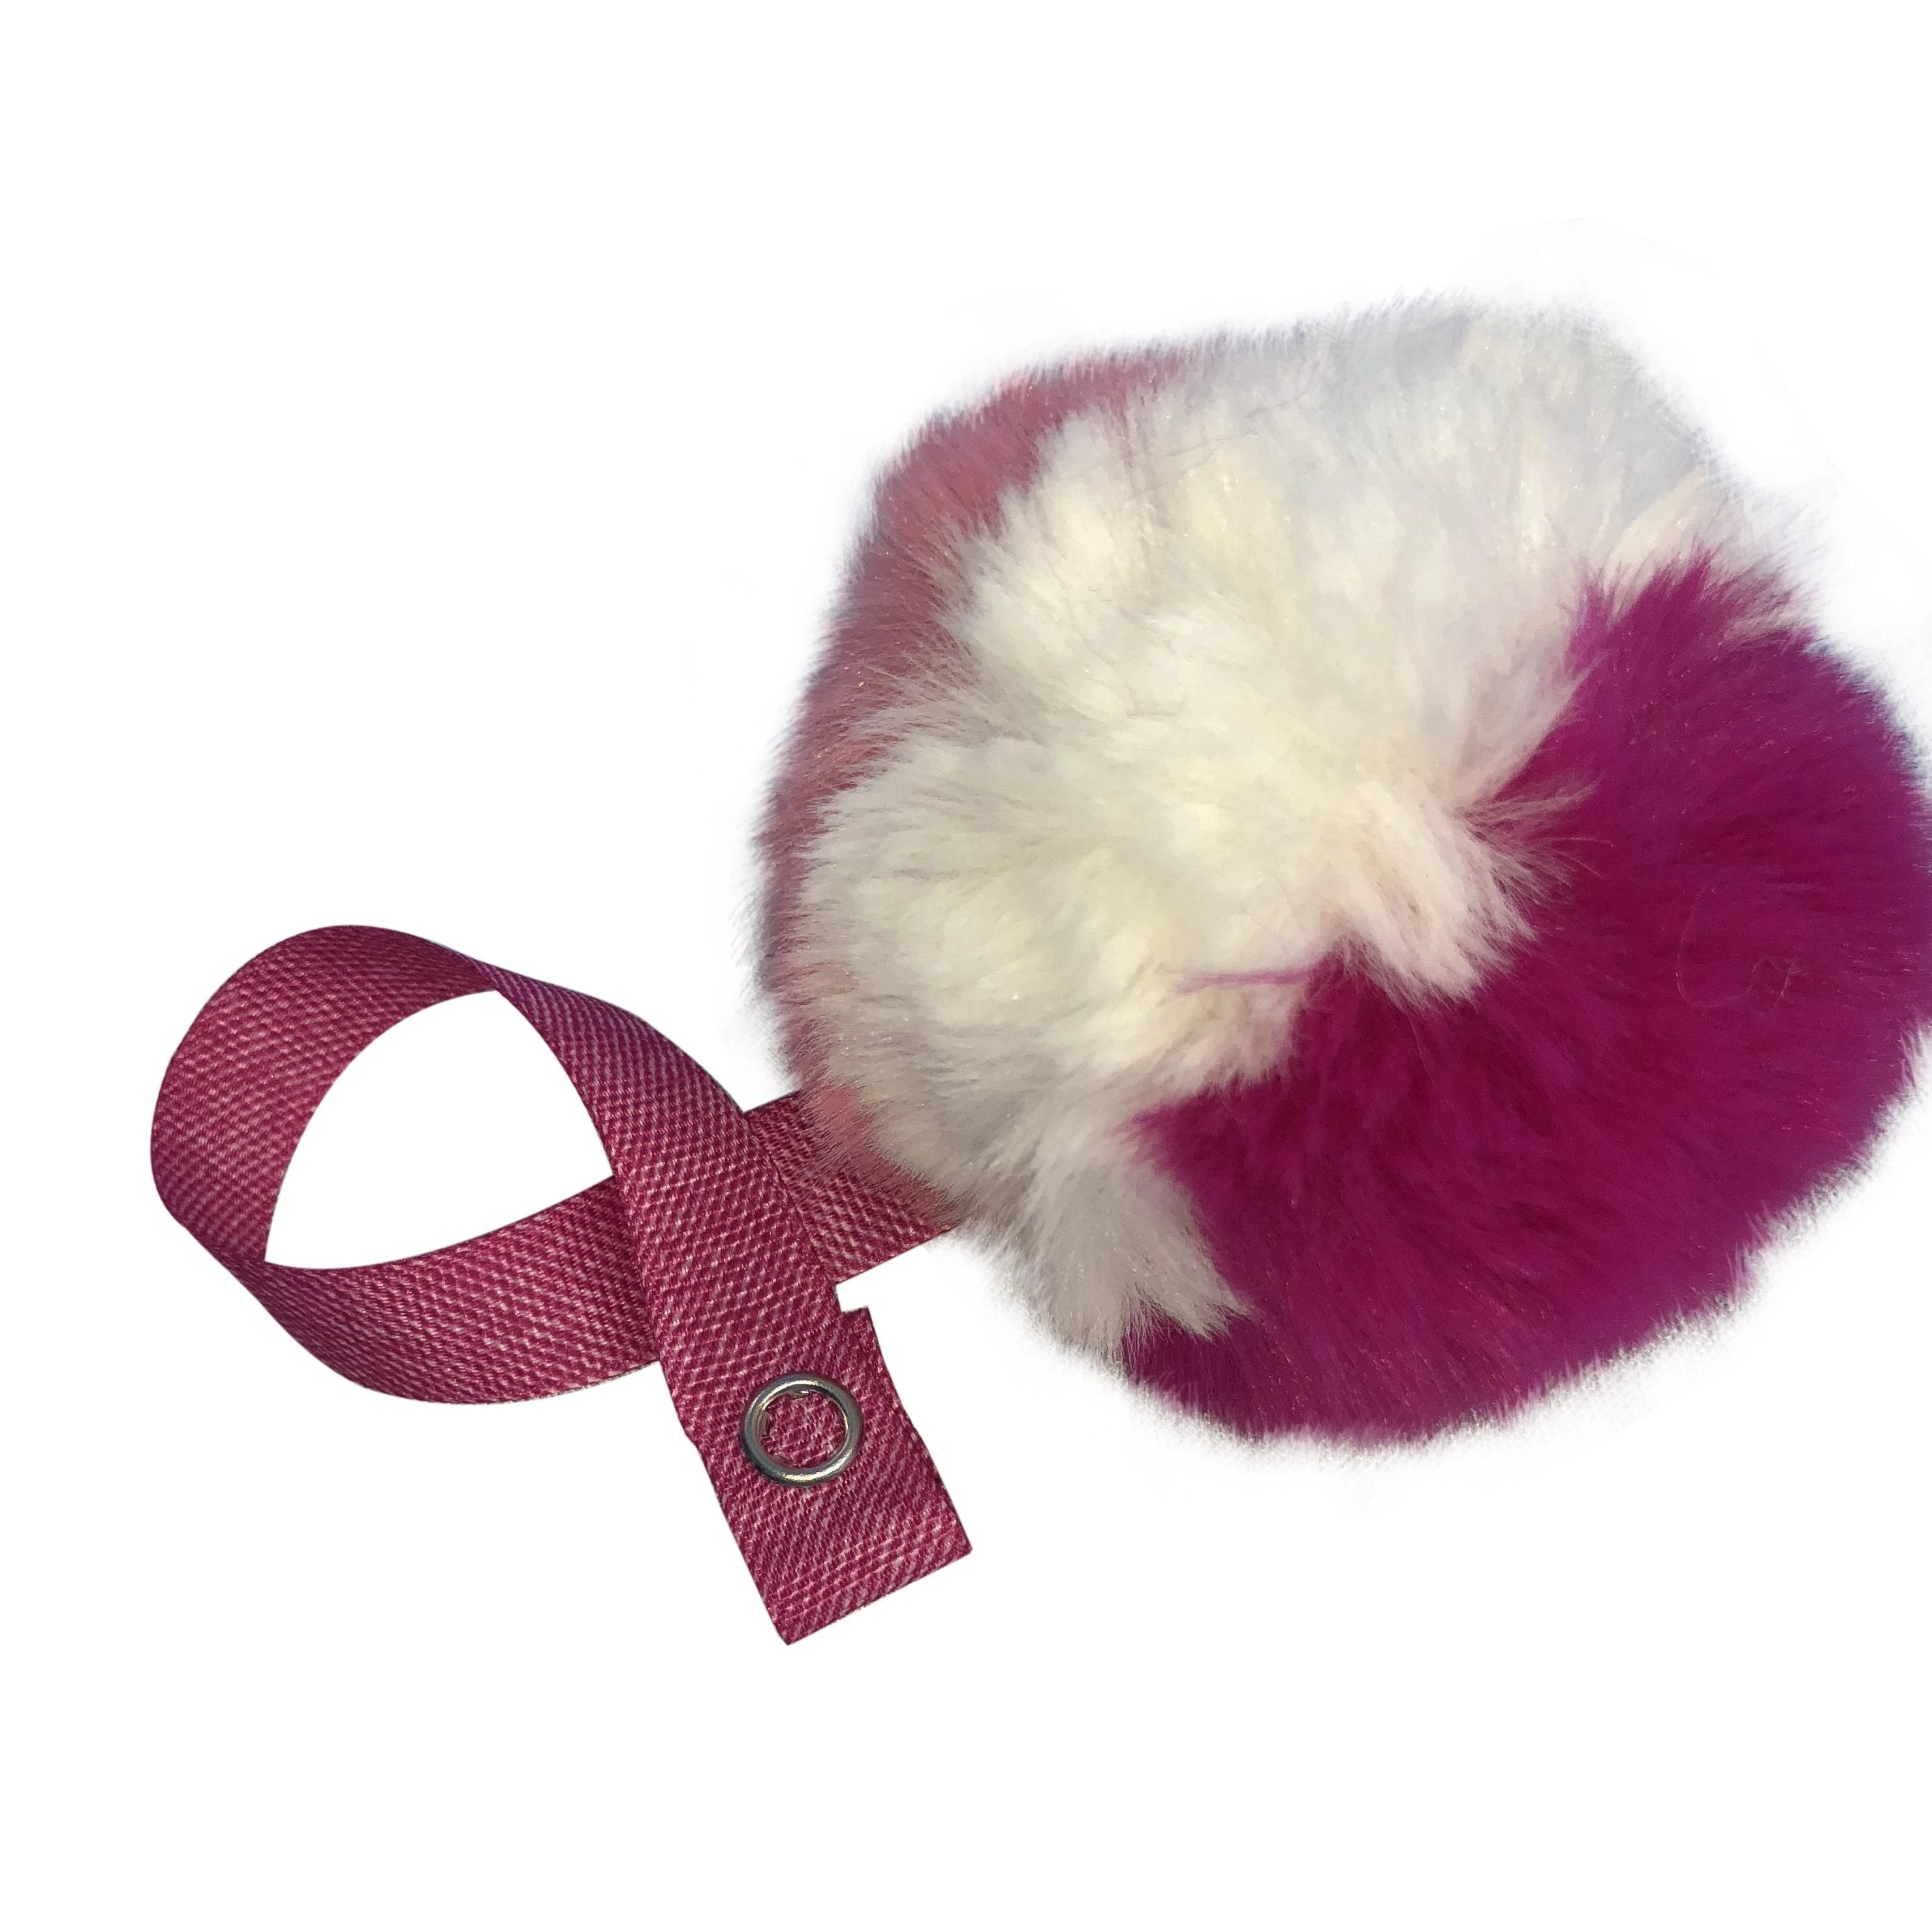 Tri Color Fushia, Pink & White Fur Pom Pom